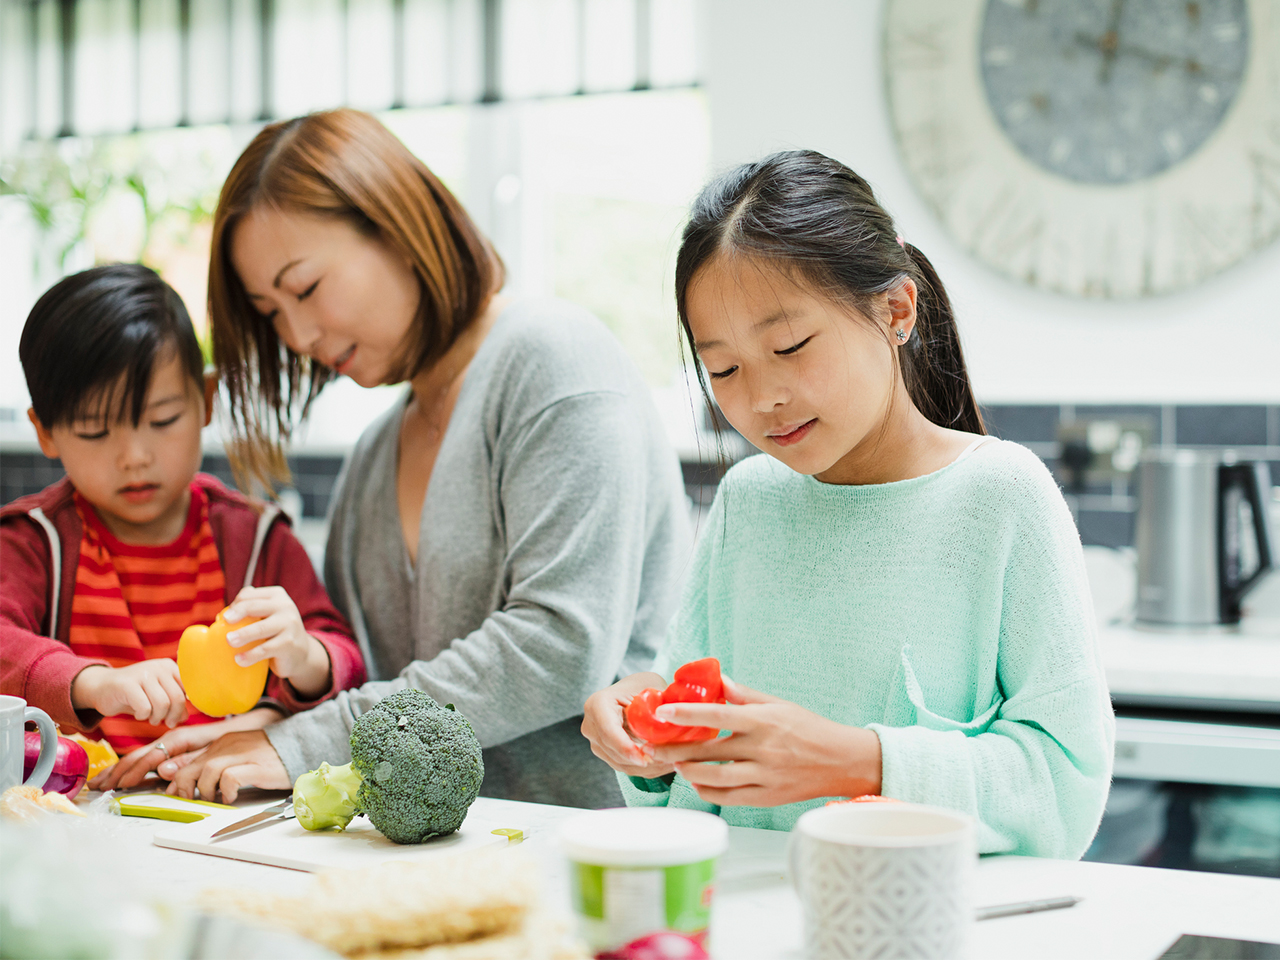 Mom and two kids prepping veggies in a kitchen